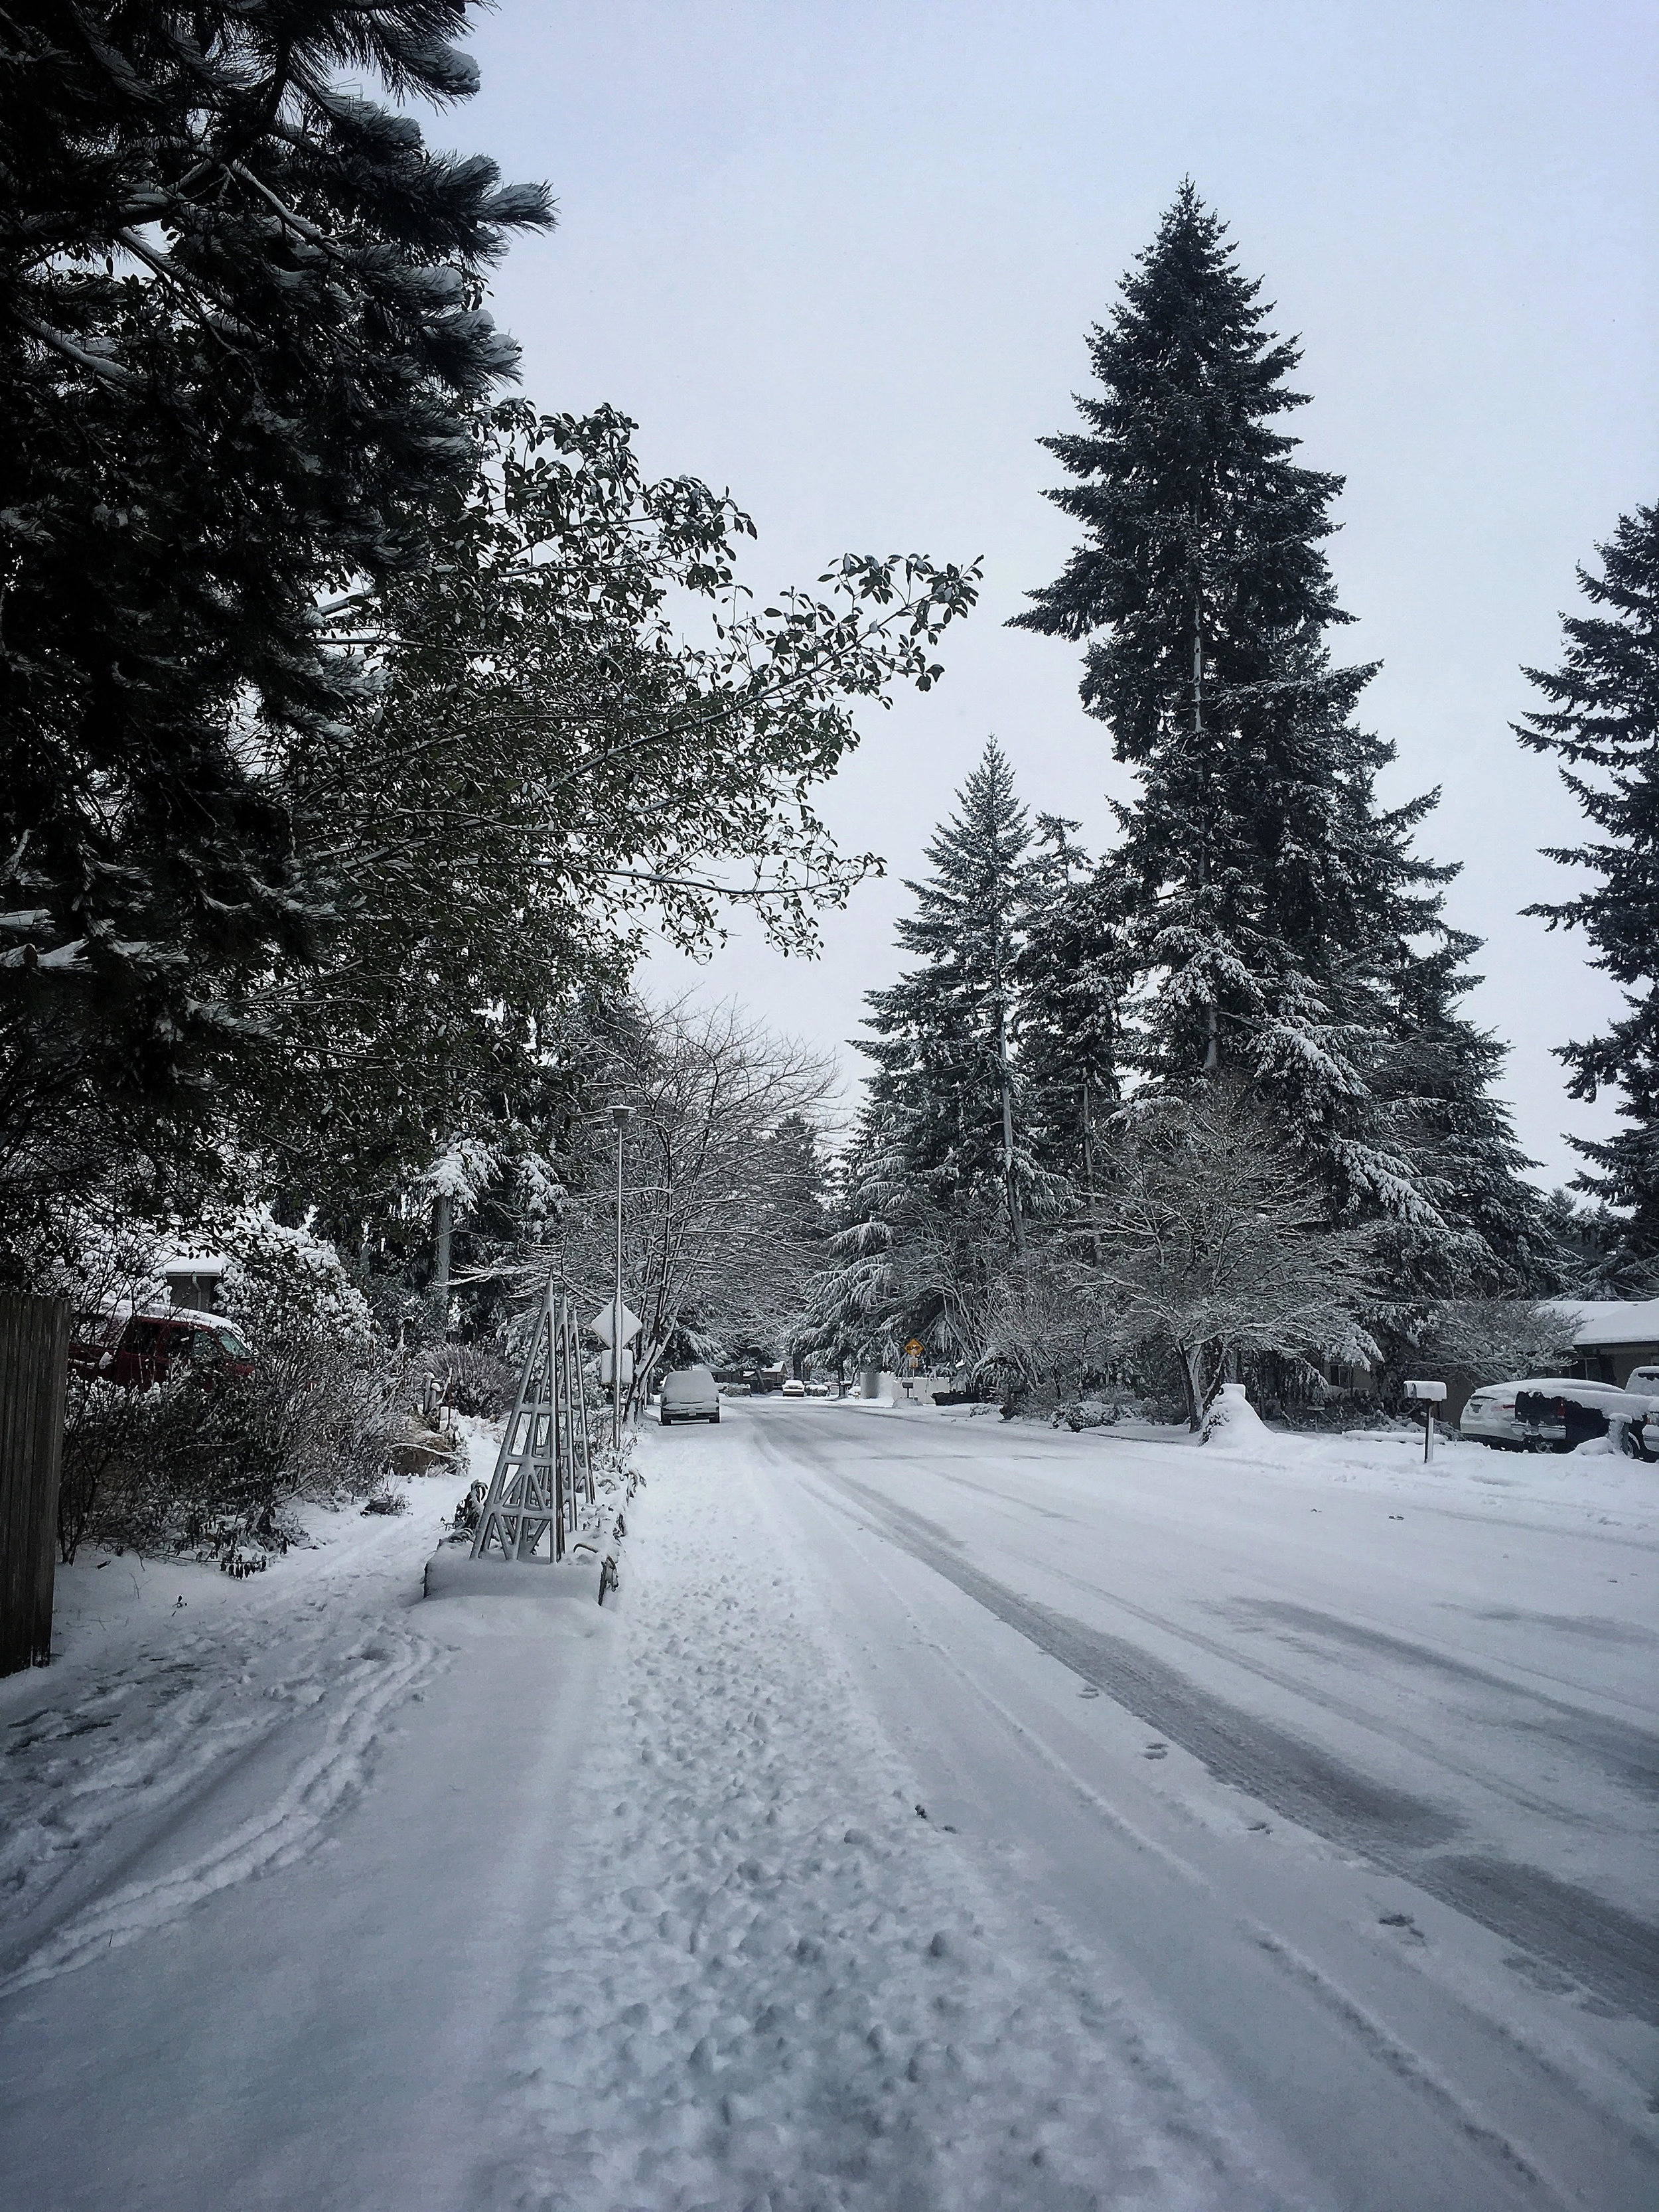 View of our street on Wednesday morning